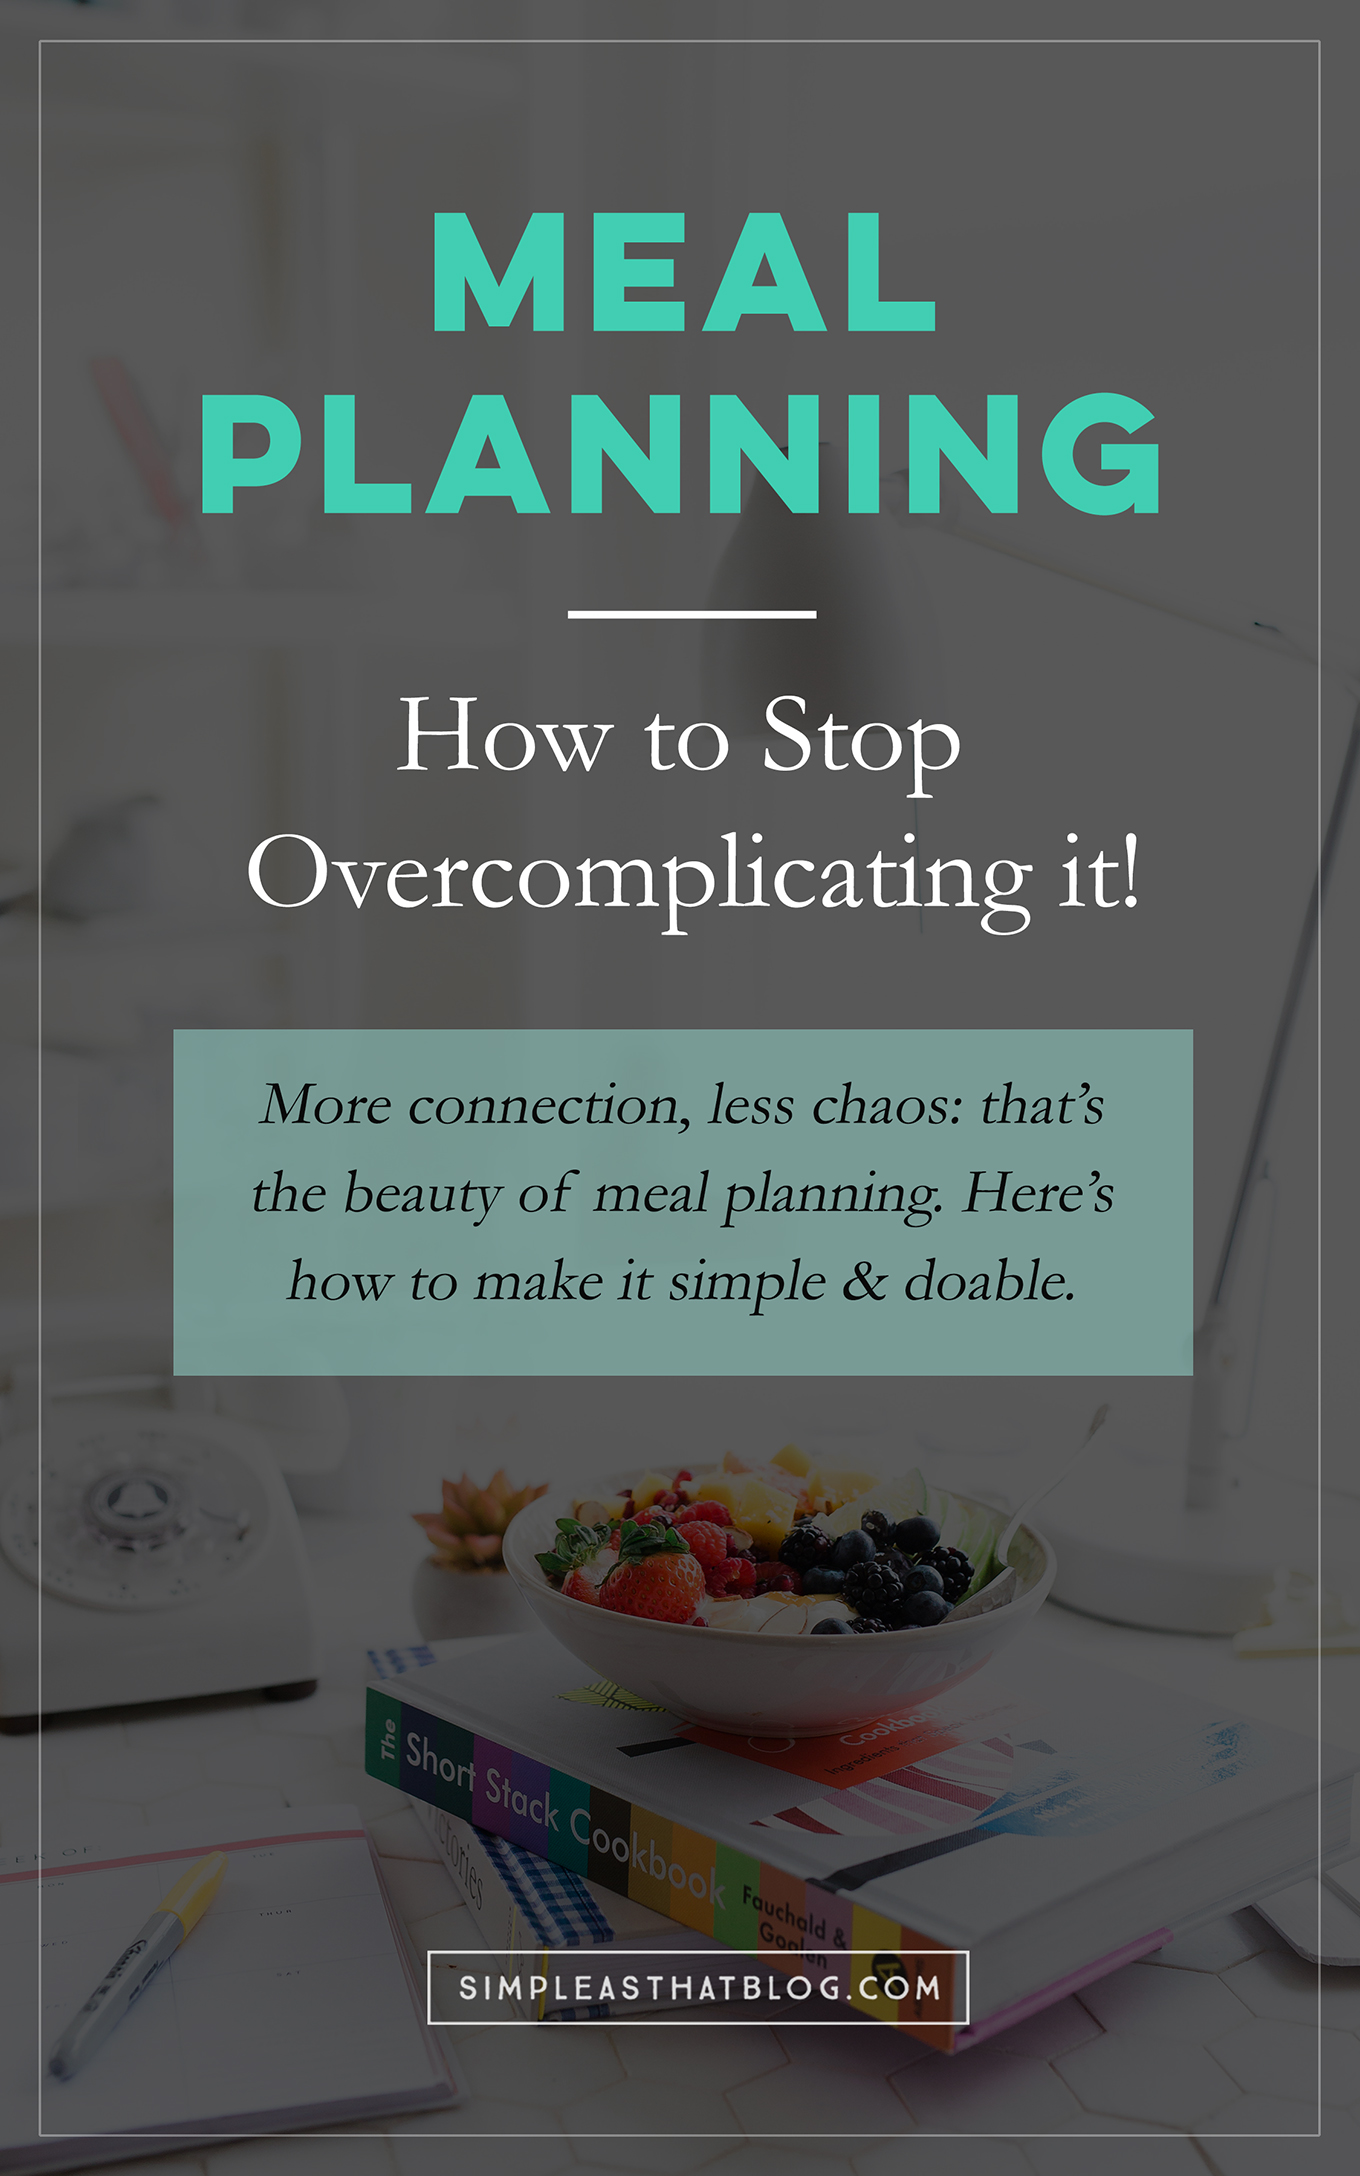 Does meal planning feel like just one more thing to add to your to-do list? Maybe that's because you're making it too complicated. (I know I was.) Here's how to simplify the process so it works in real life.